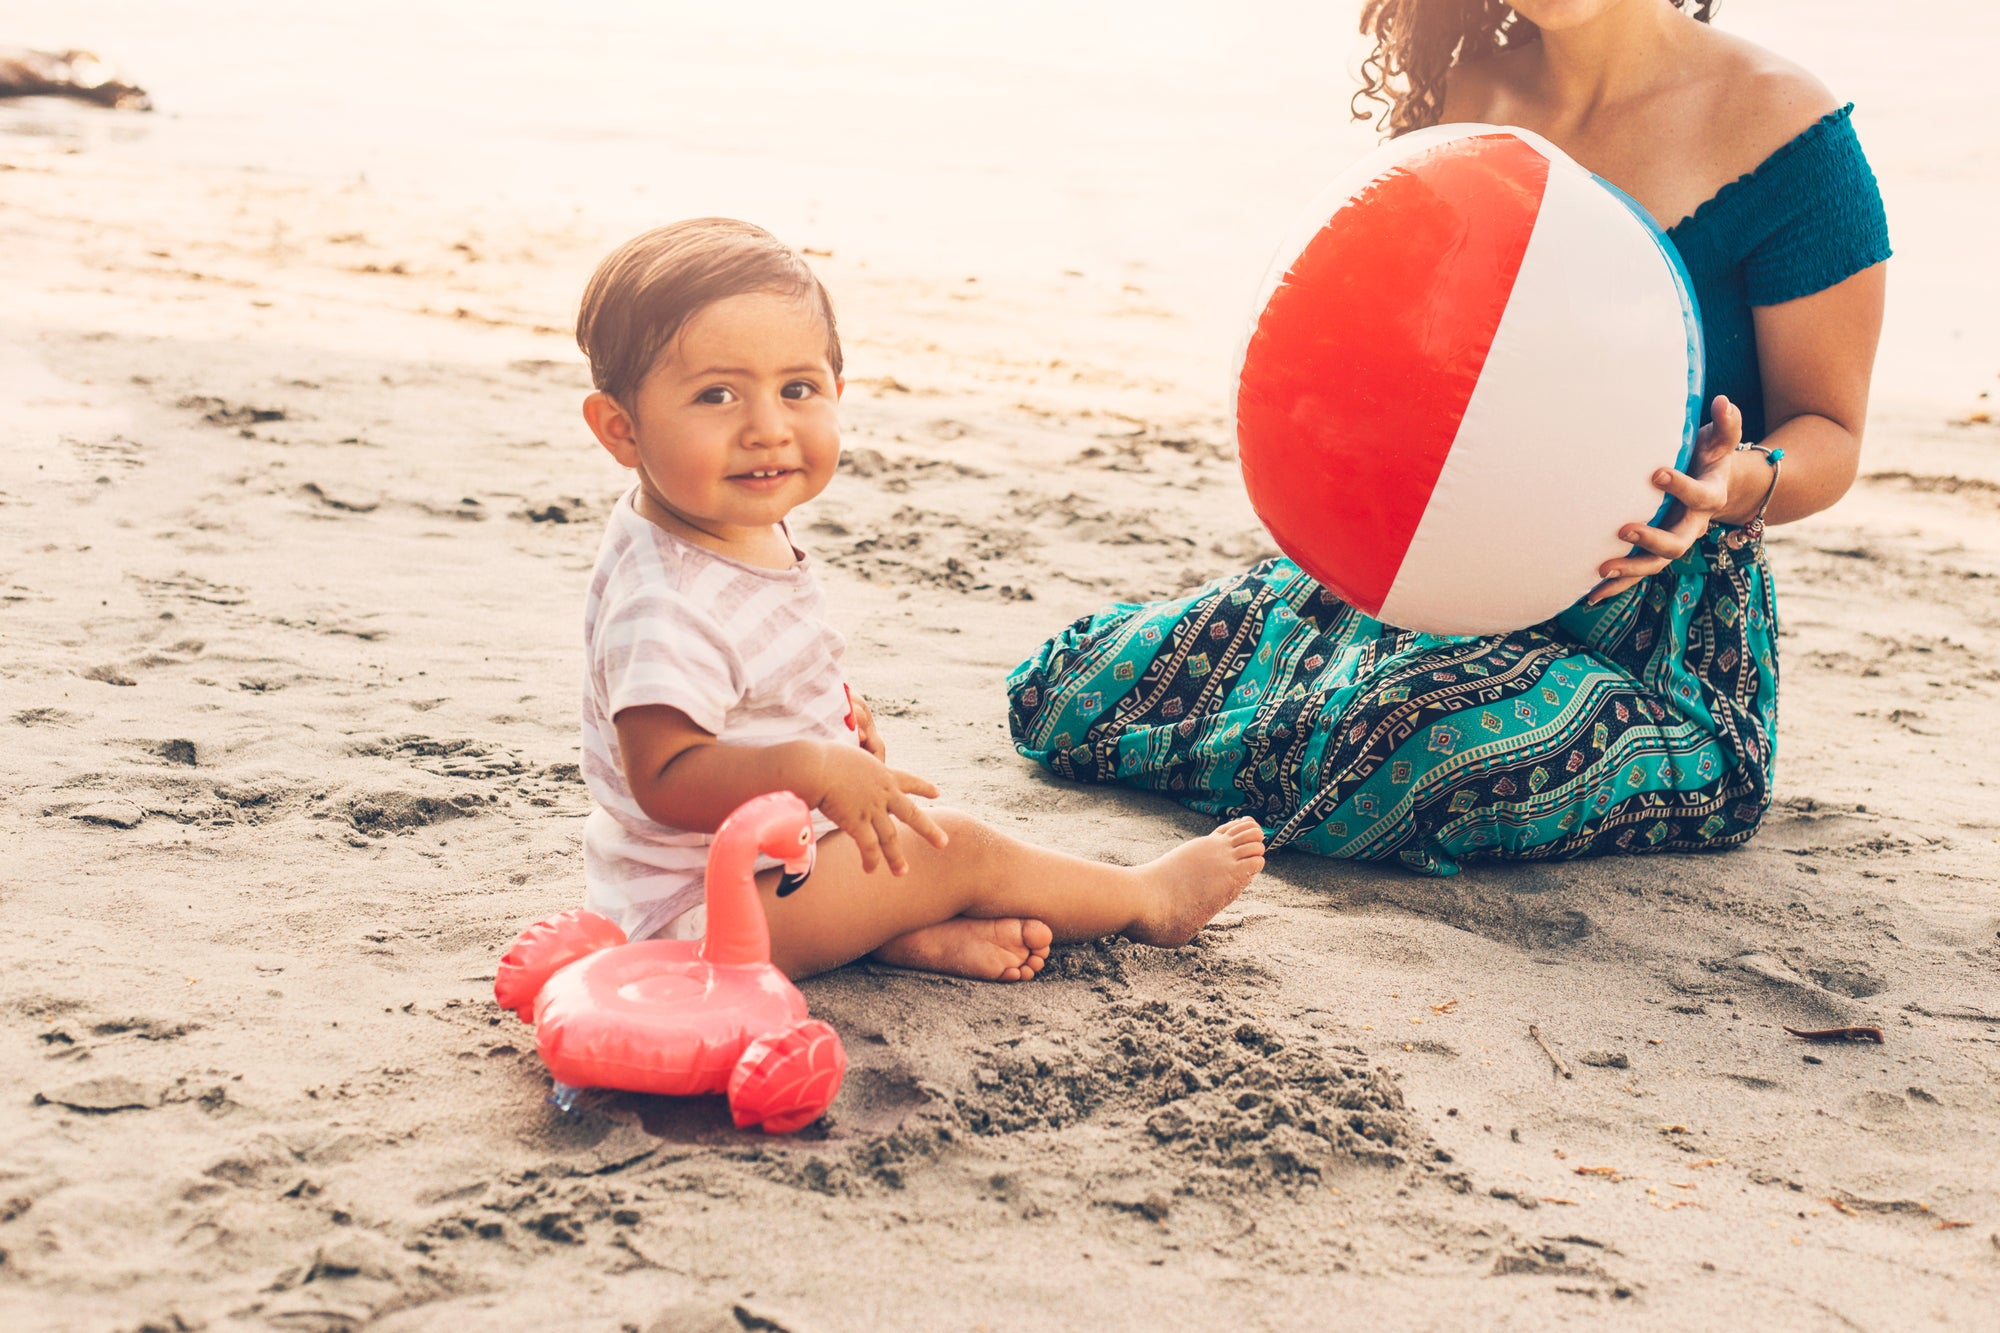 It's Baby Safety Month & We've Rounded Up Tips for Swim and Sun Safety